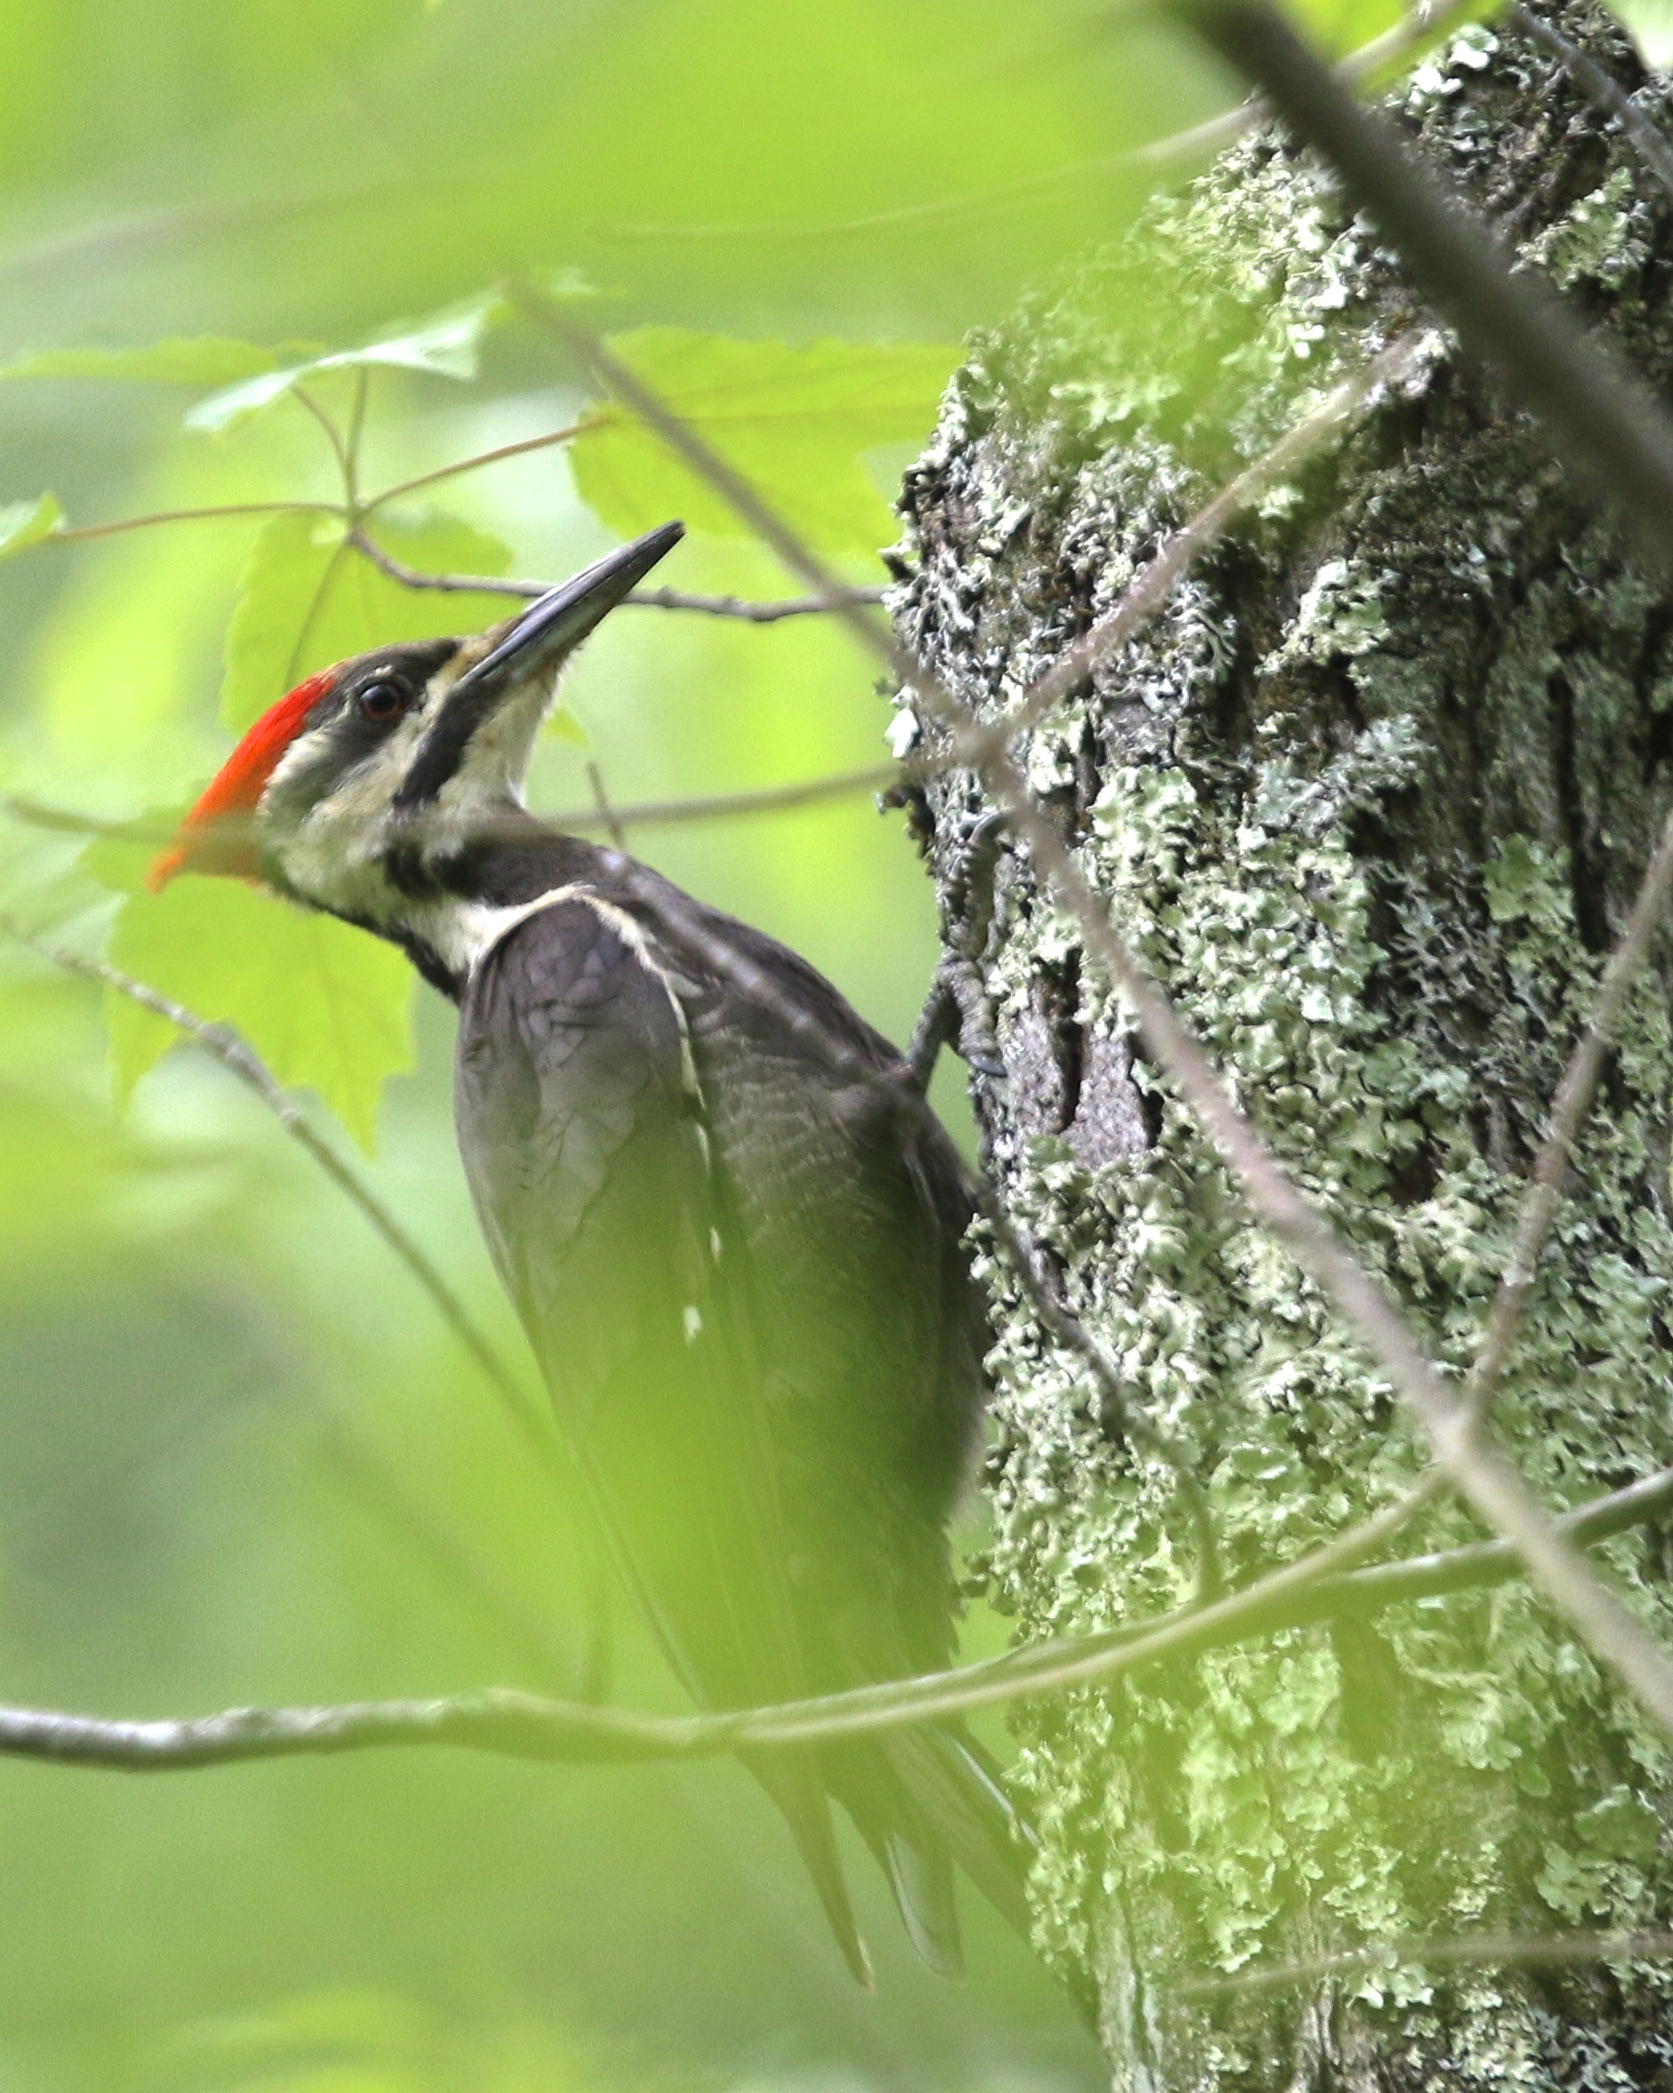 ~This Pileated Woodpecker was SO close but never got out into the open! Mills-Norrie State Park, 6/6/15.~